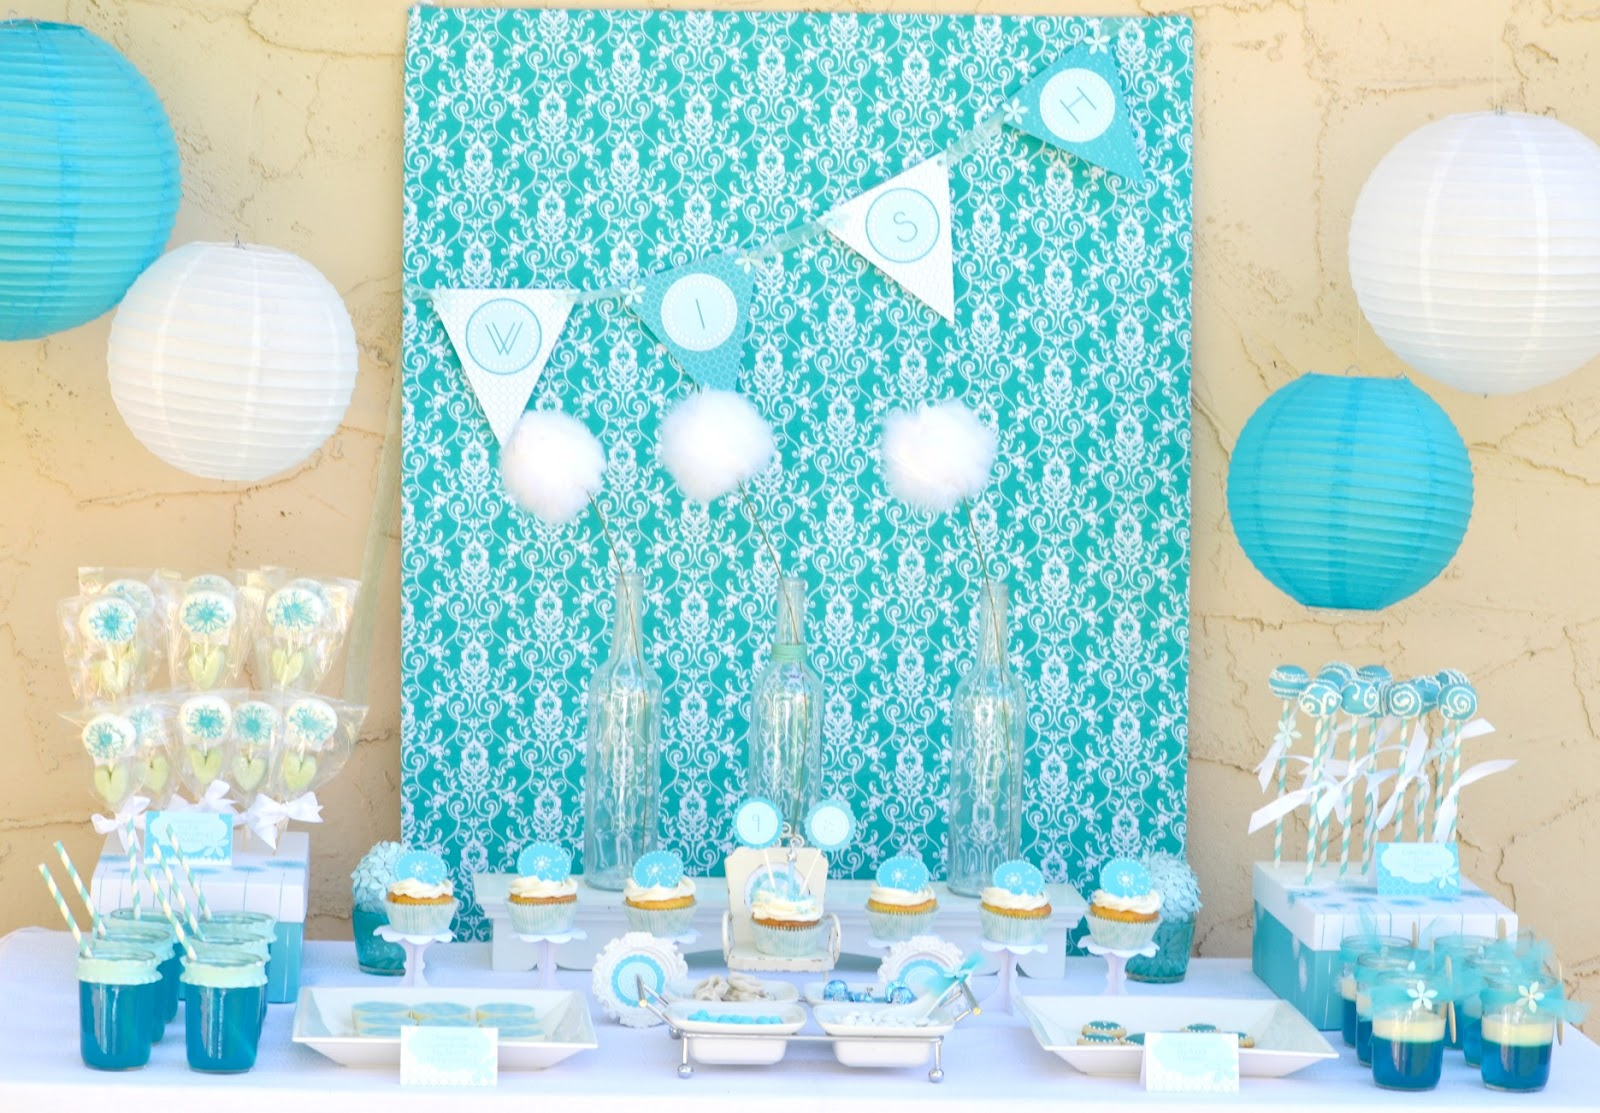 Frozen theme on pinterest frozen theme party frozen for Party backdrop ideas